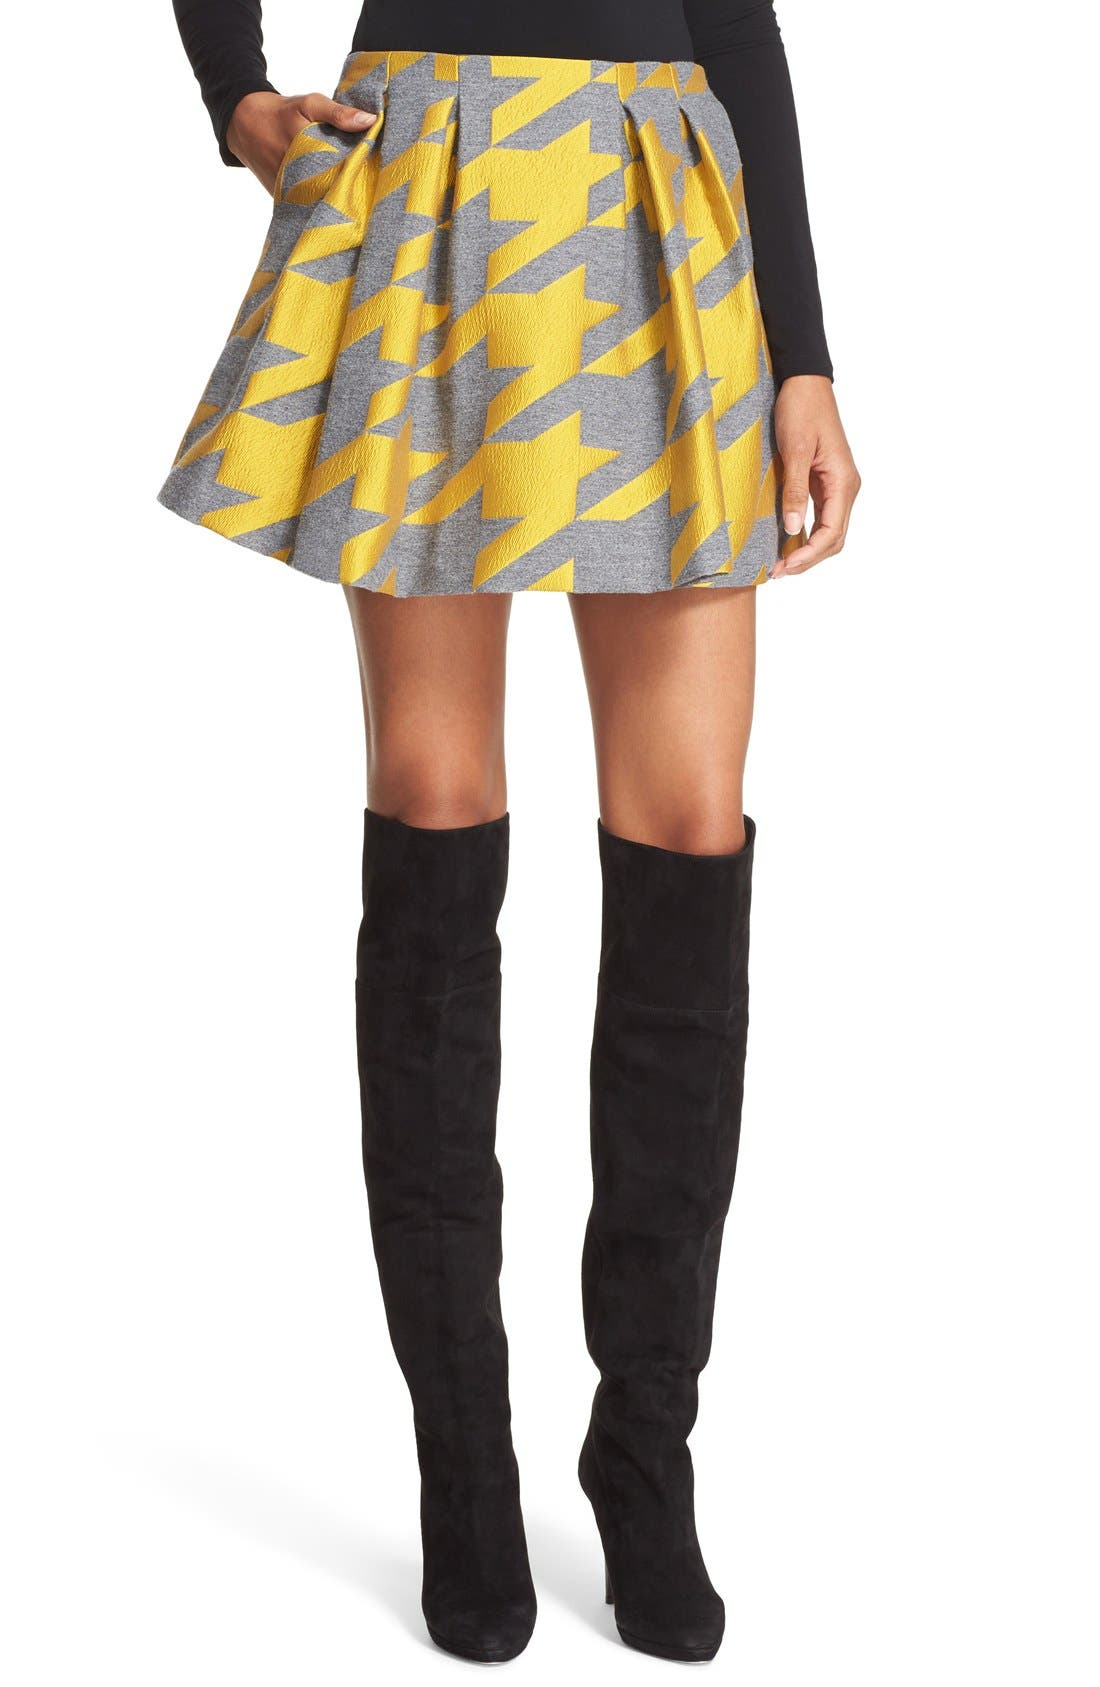 ALICE + OLIVIA 'Connor' Oversize Houndstooth Lampshade Skirt, Main, color, 700